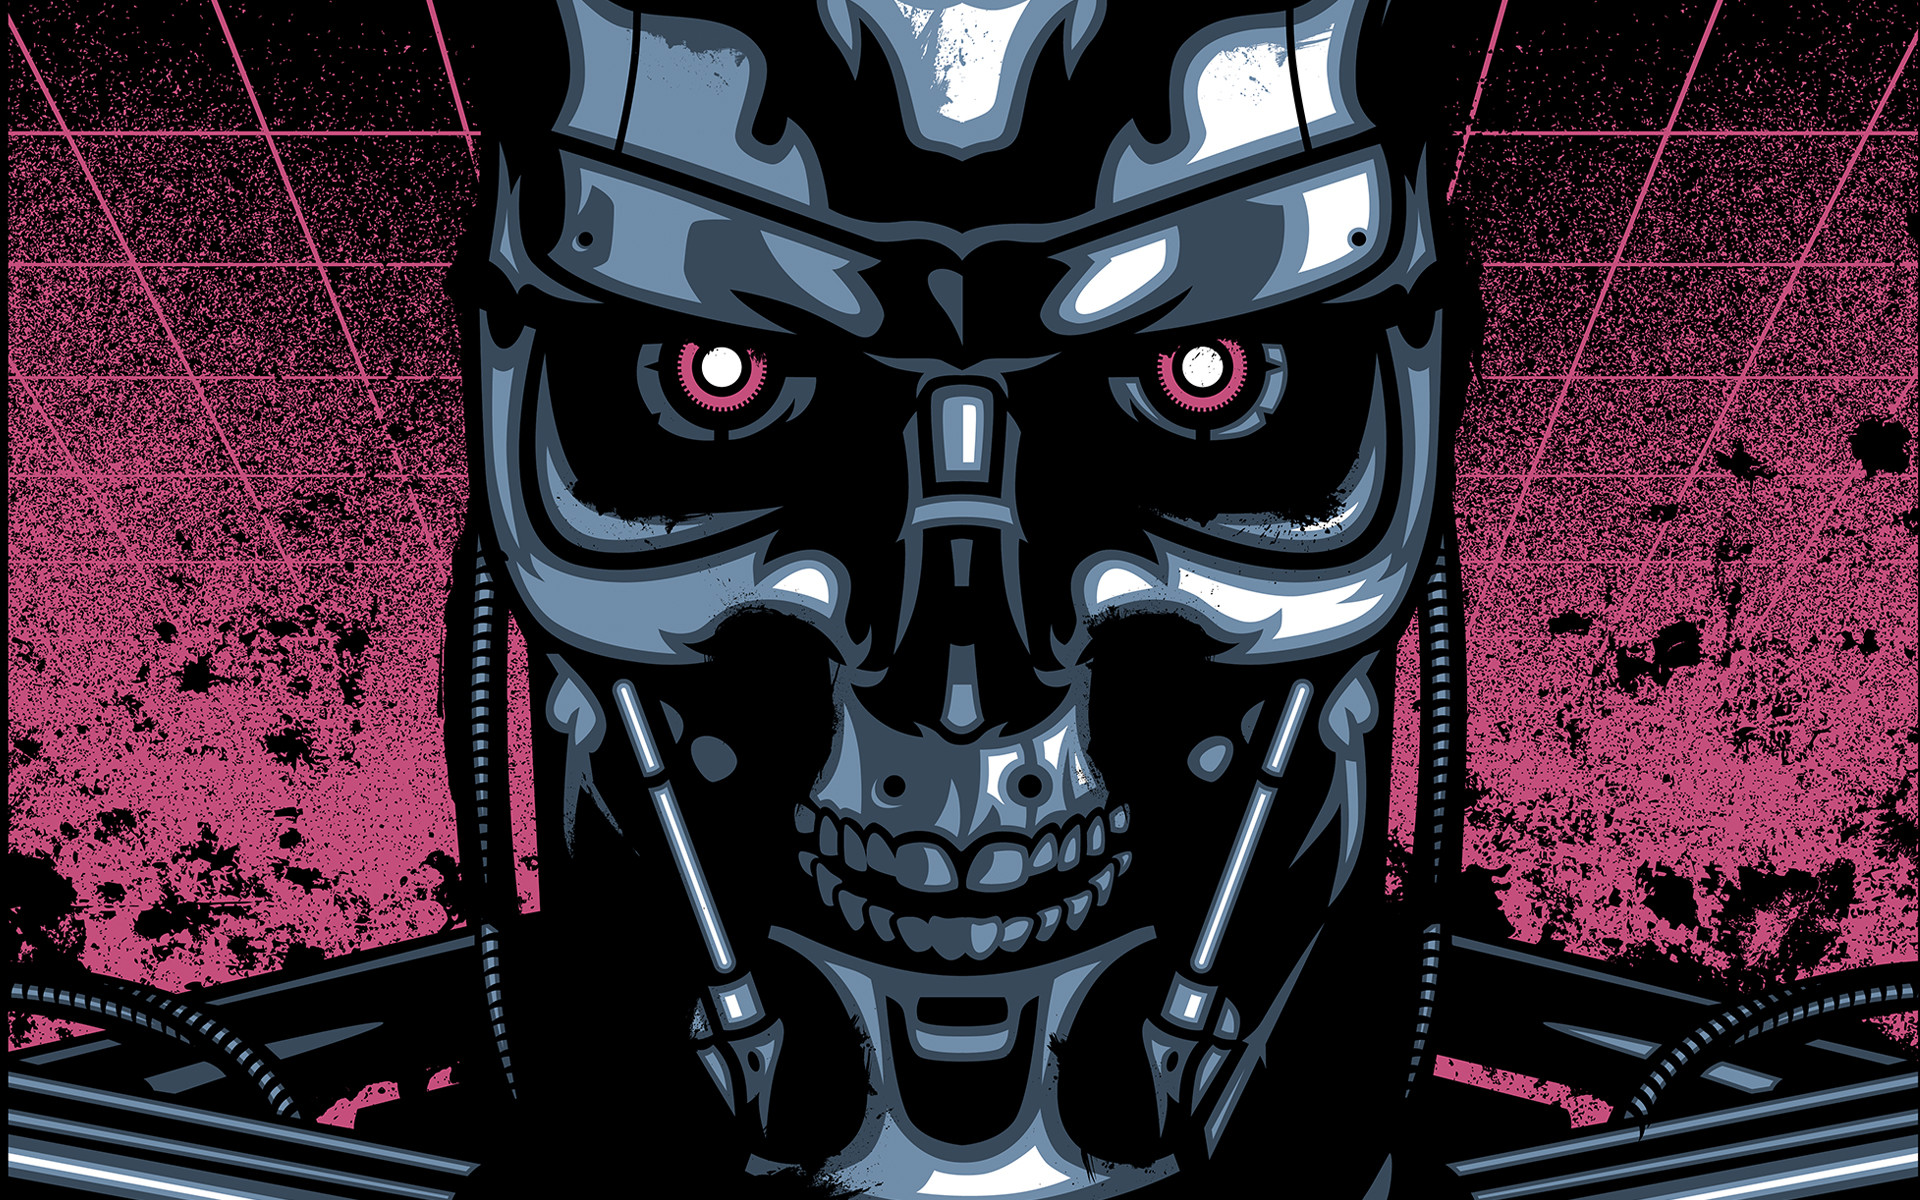 1920x1200 Cartoon Terminator Genisys Wallpaper HD 216 Wallpaper